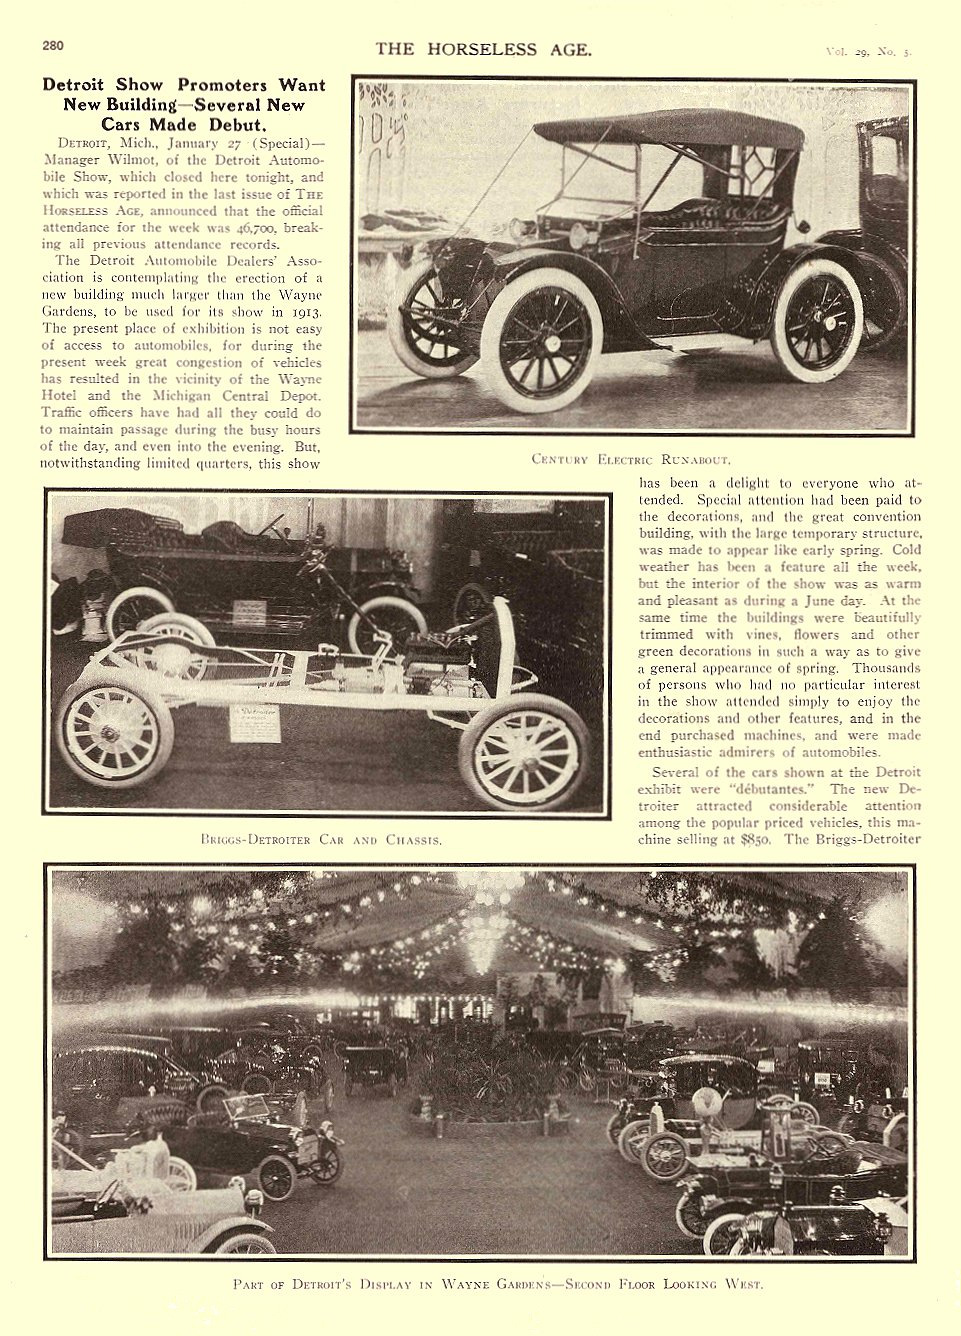 1912 1 31 CENTURY Electric Century Electric Runabout THE HORSELESS AGE January 31, 1912 University of Minnesota Library 8.75″x11.75″ page 280